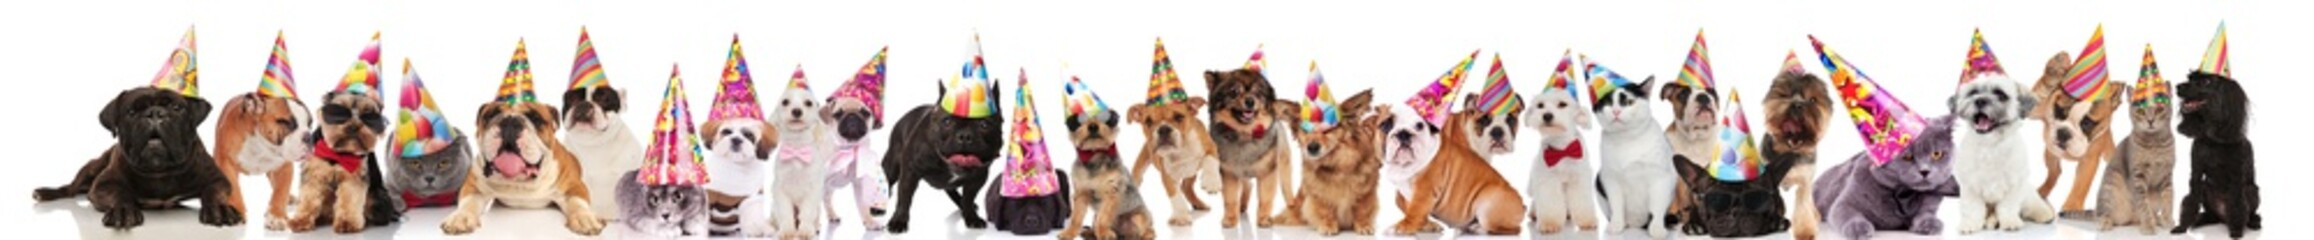 large group of happy pets wearing colorful birthday hats